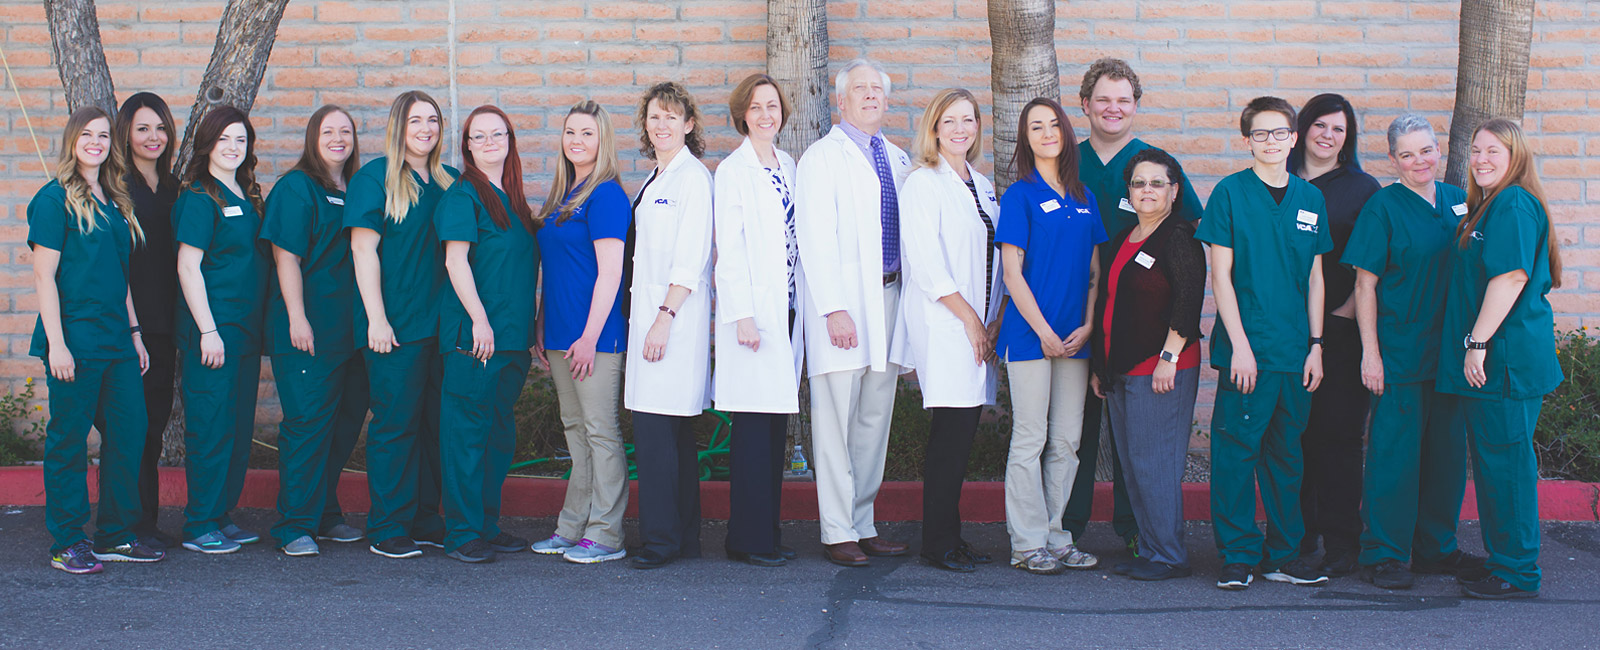 Team Picture of VCA McCormick Ranch Animal Hospital